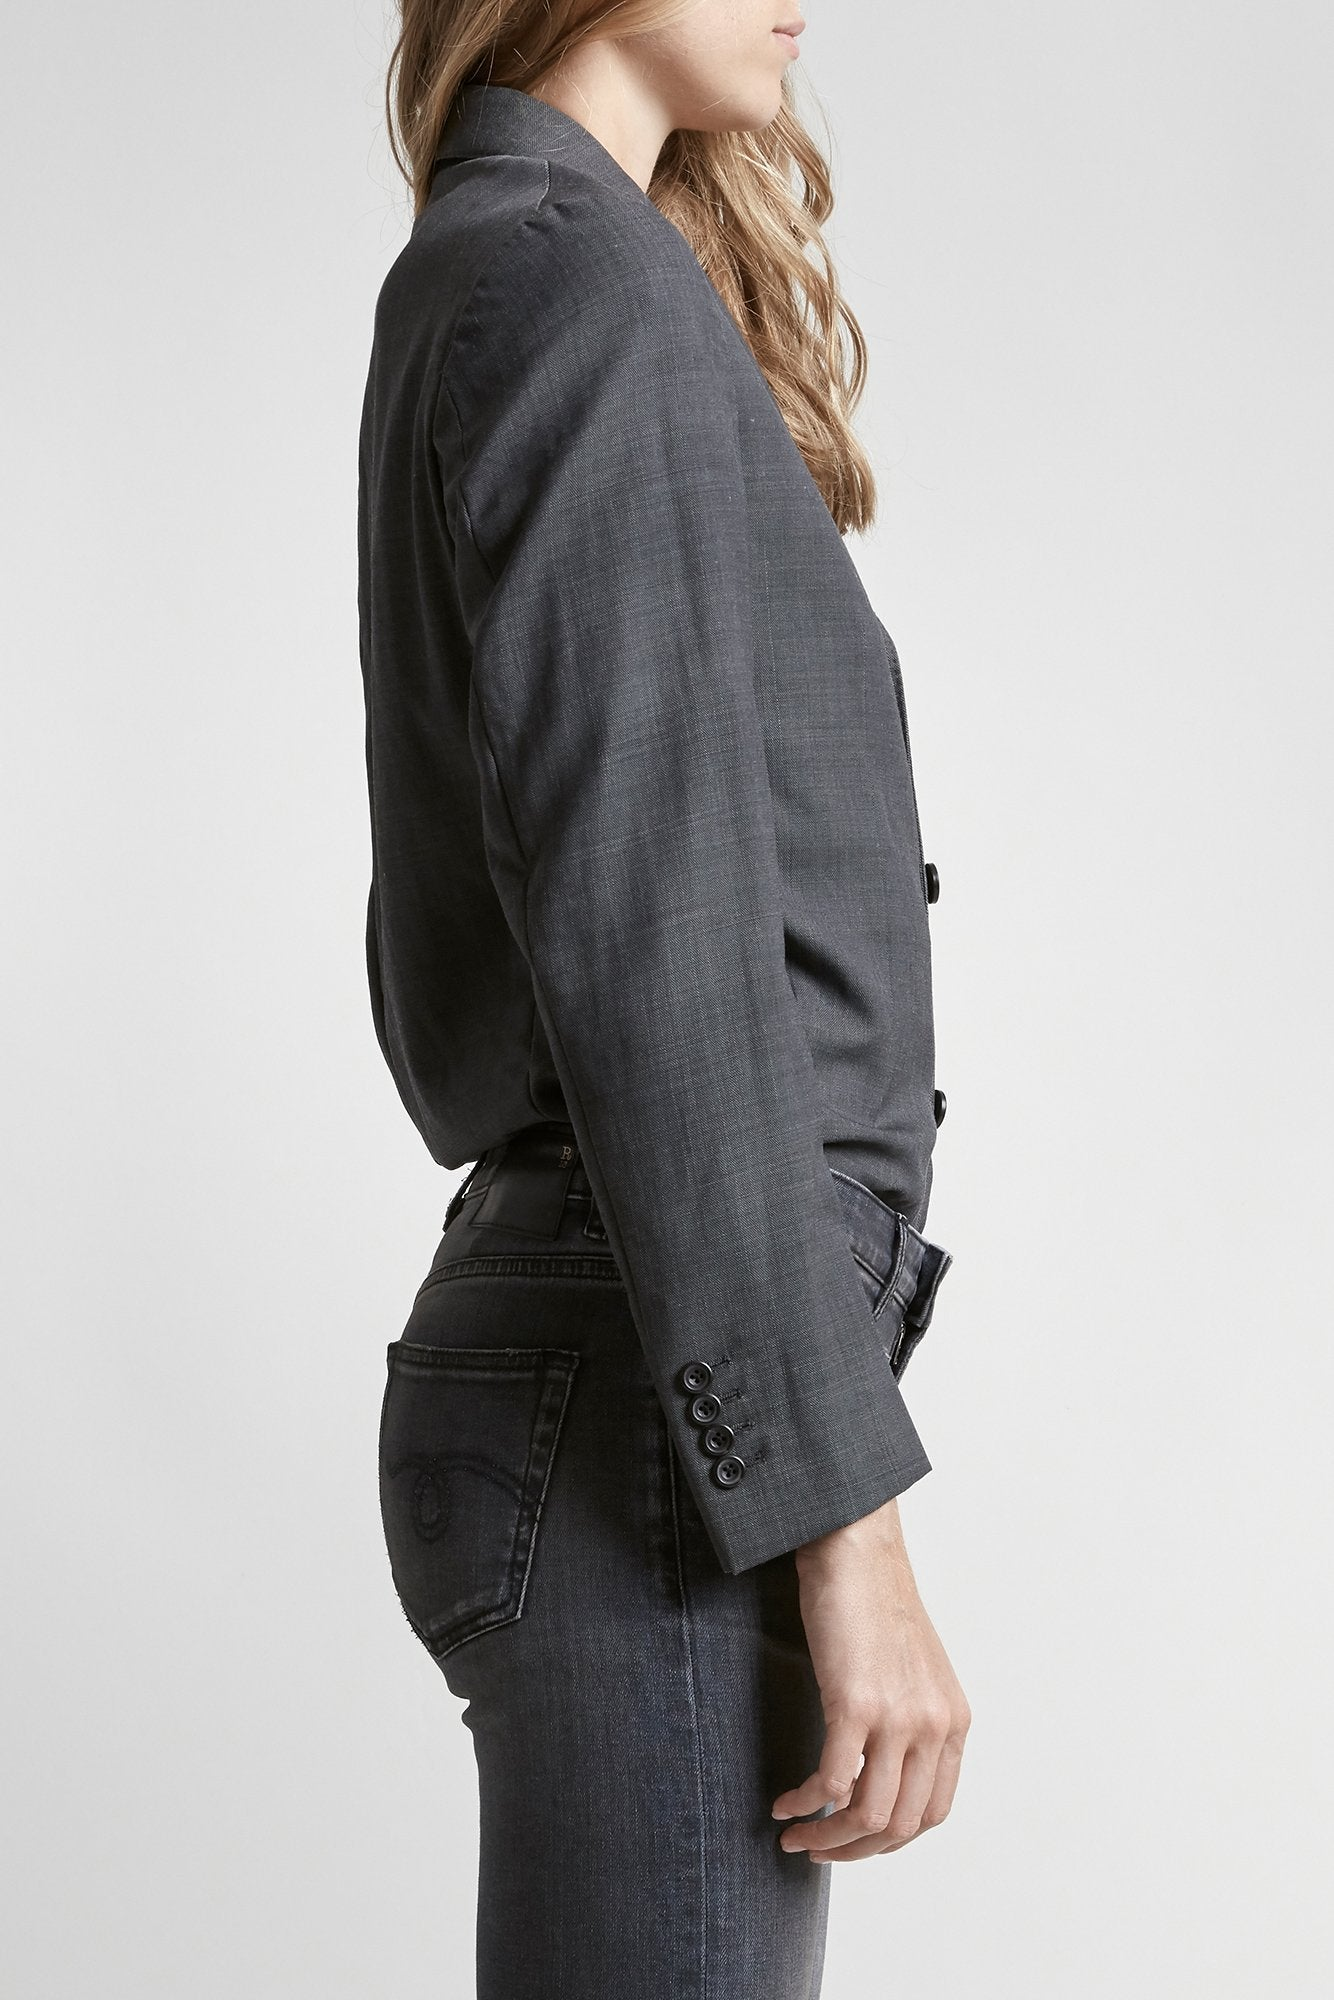 Tucked Boyfriend Blazer - Grey